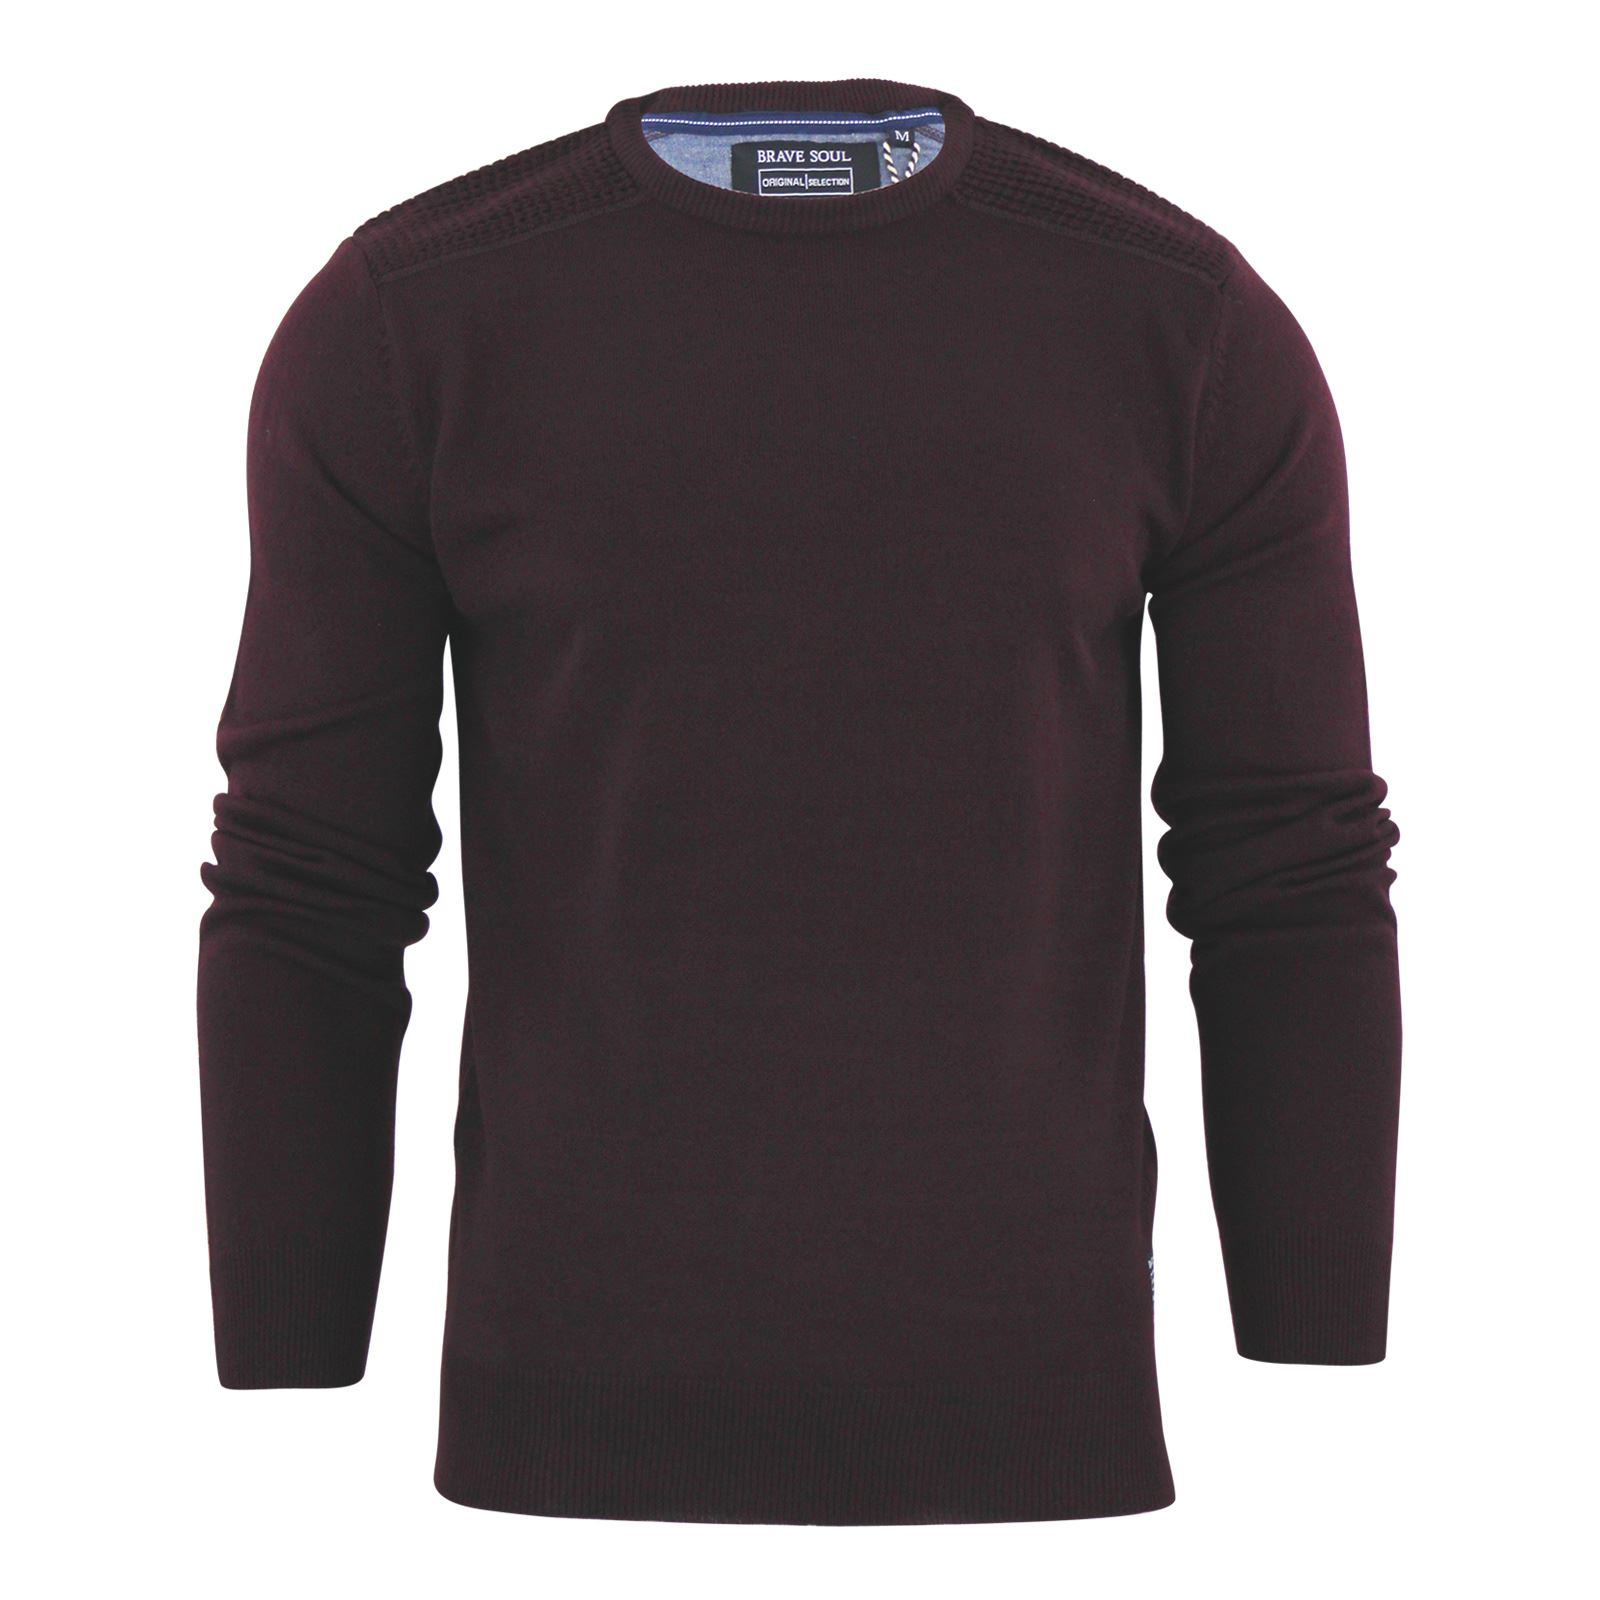 Mens-Jumper-Brave-Soul-Knitted-Sweater-In-Various-Styles thumbnail 73